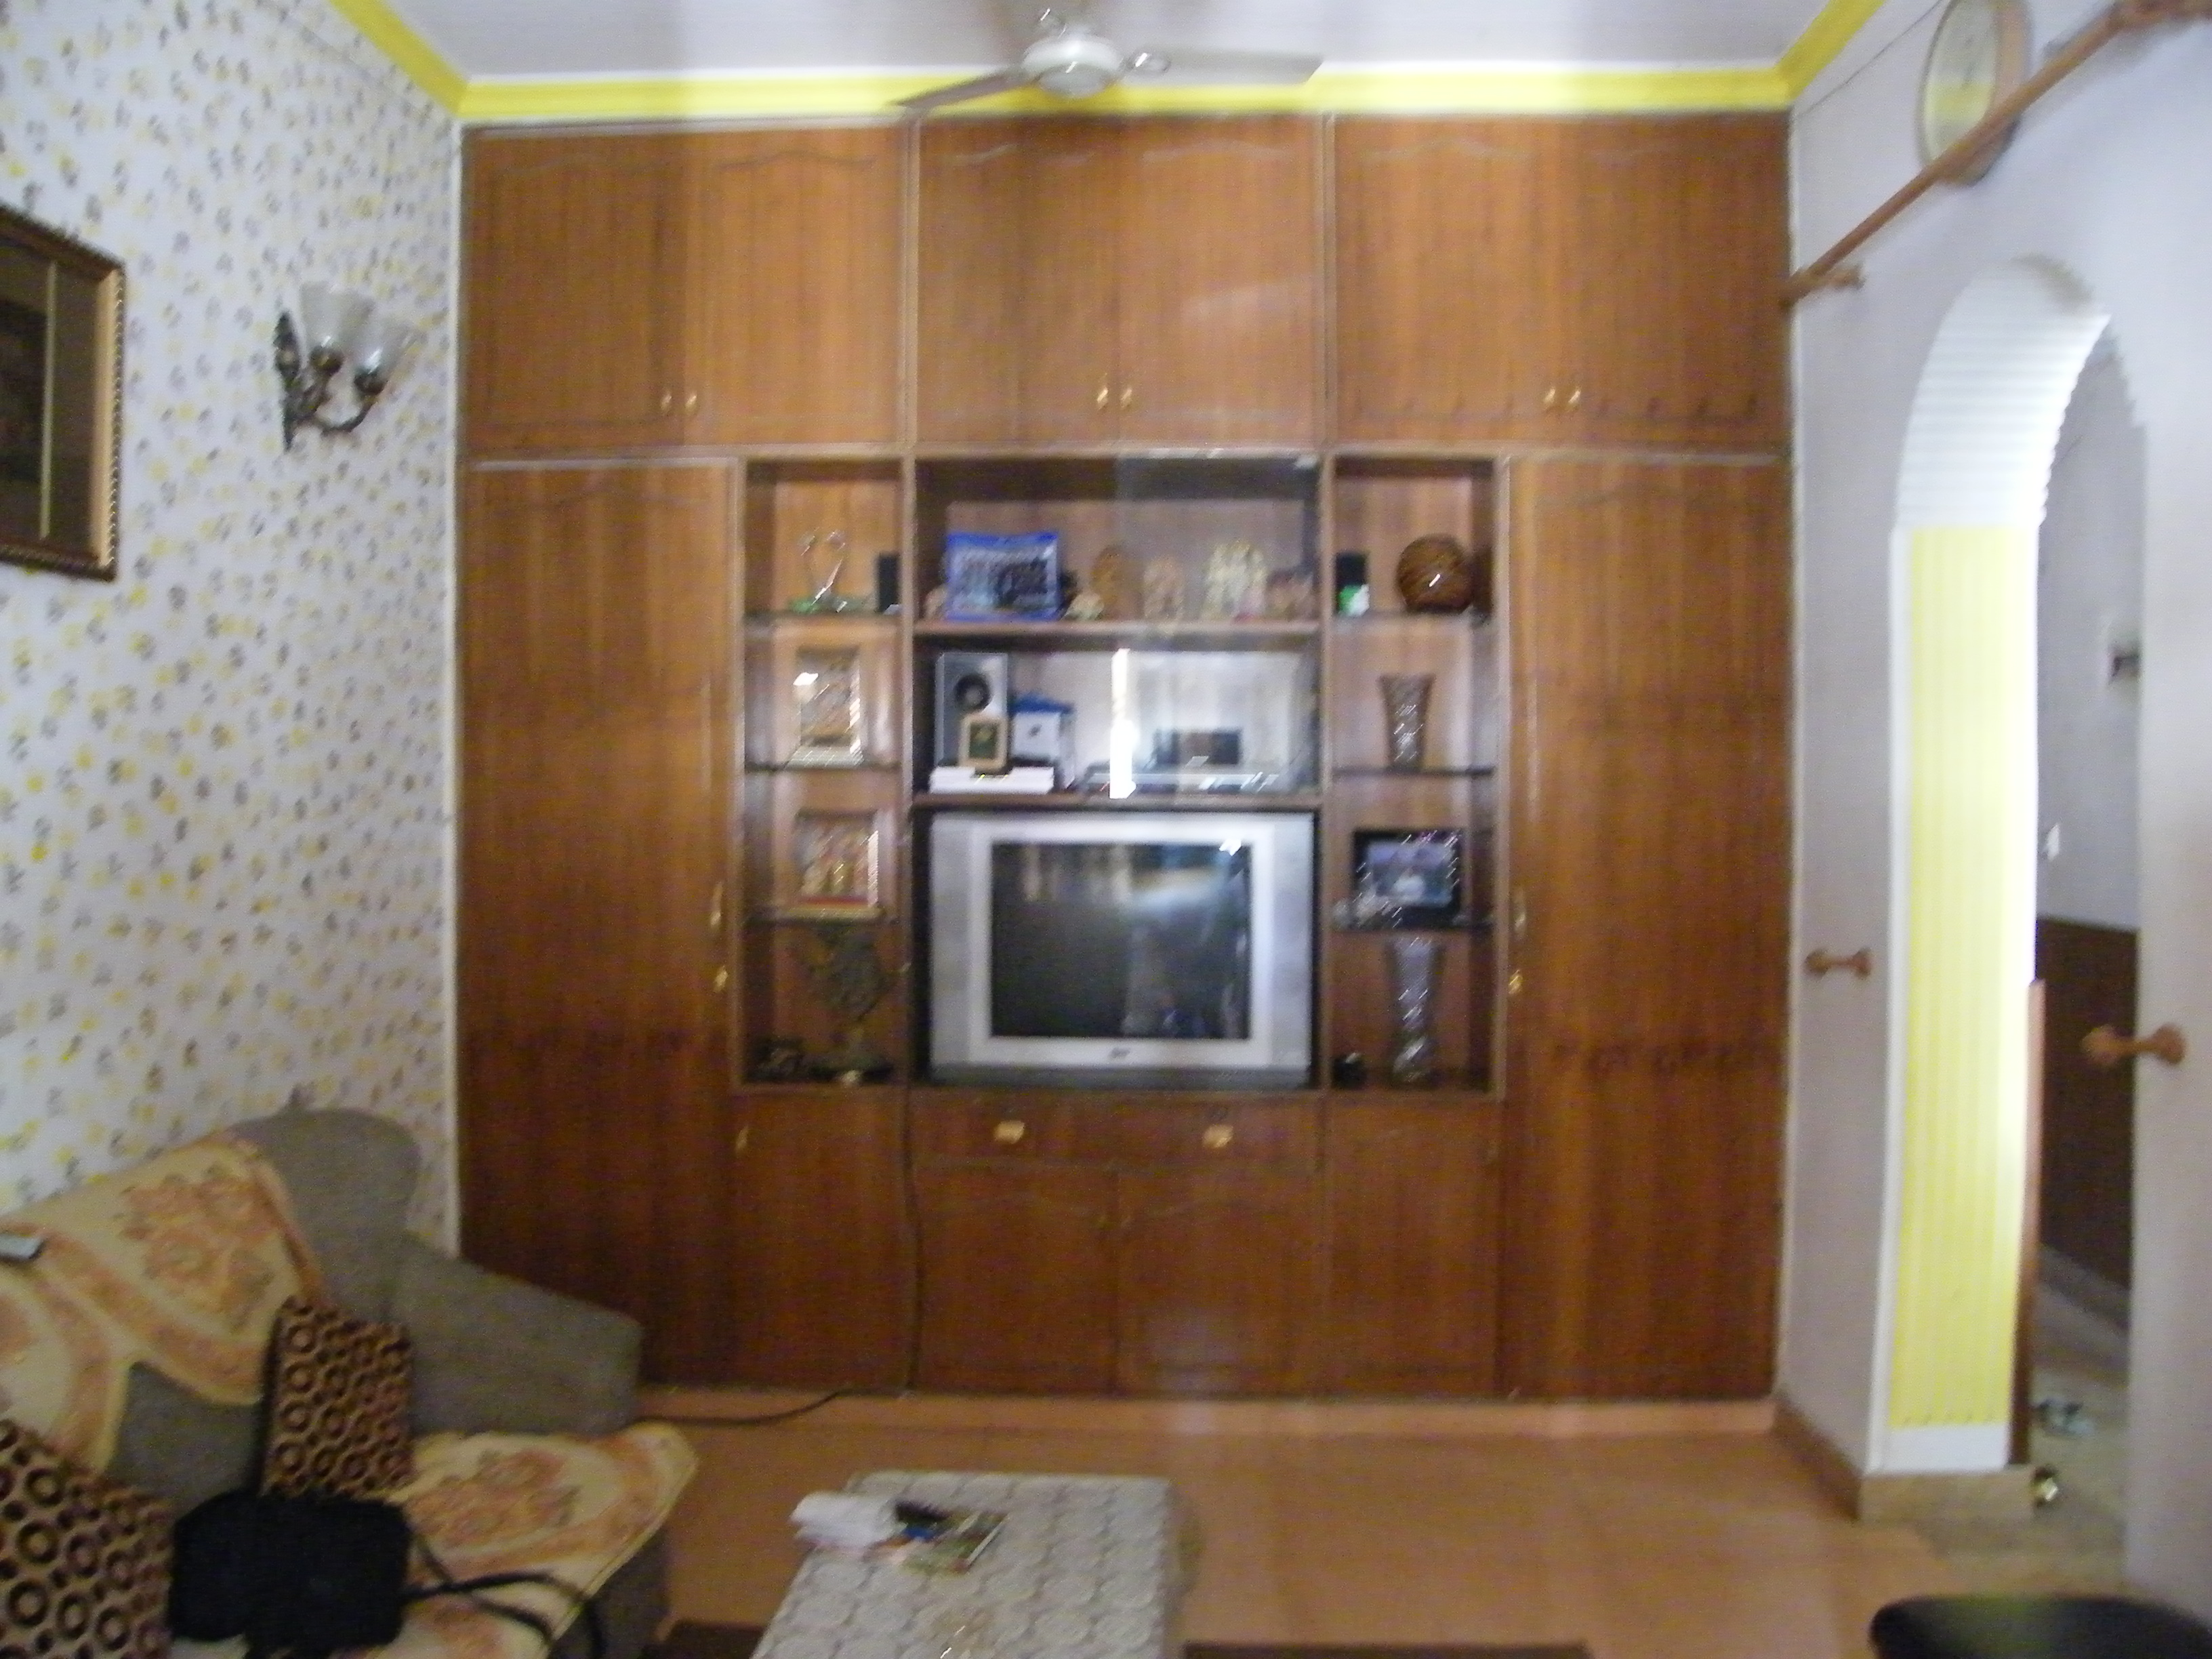 2 bhk interior designs 2 bhk interior design ideas decoration images